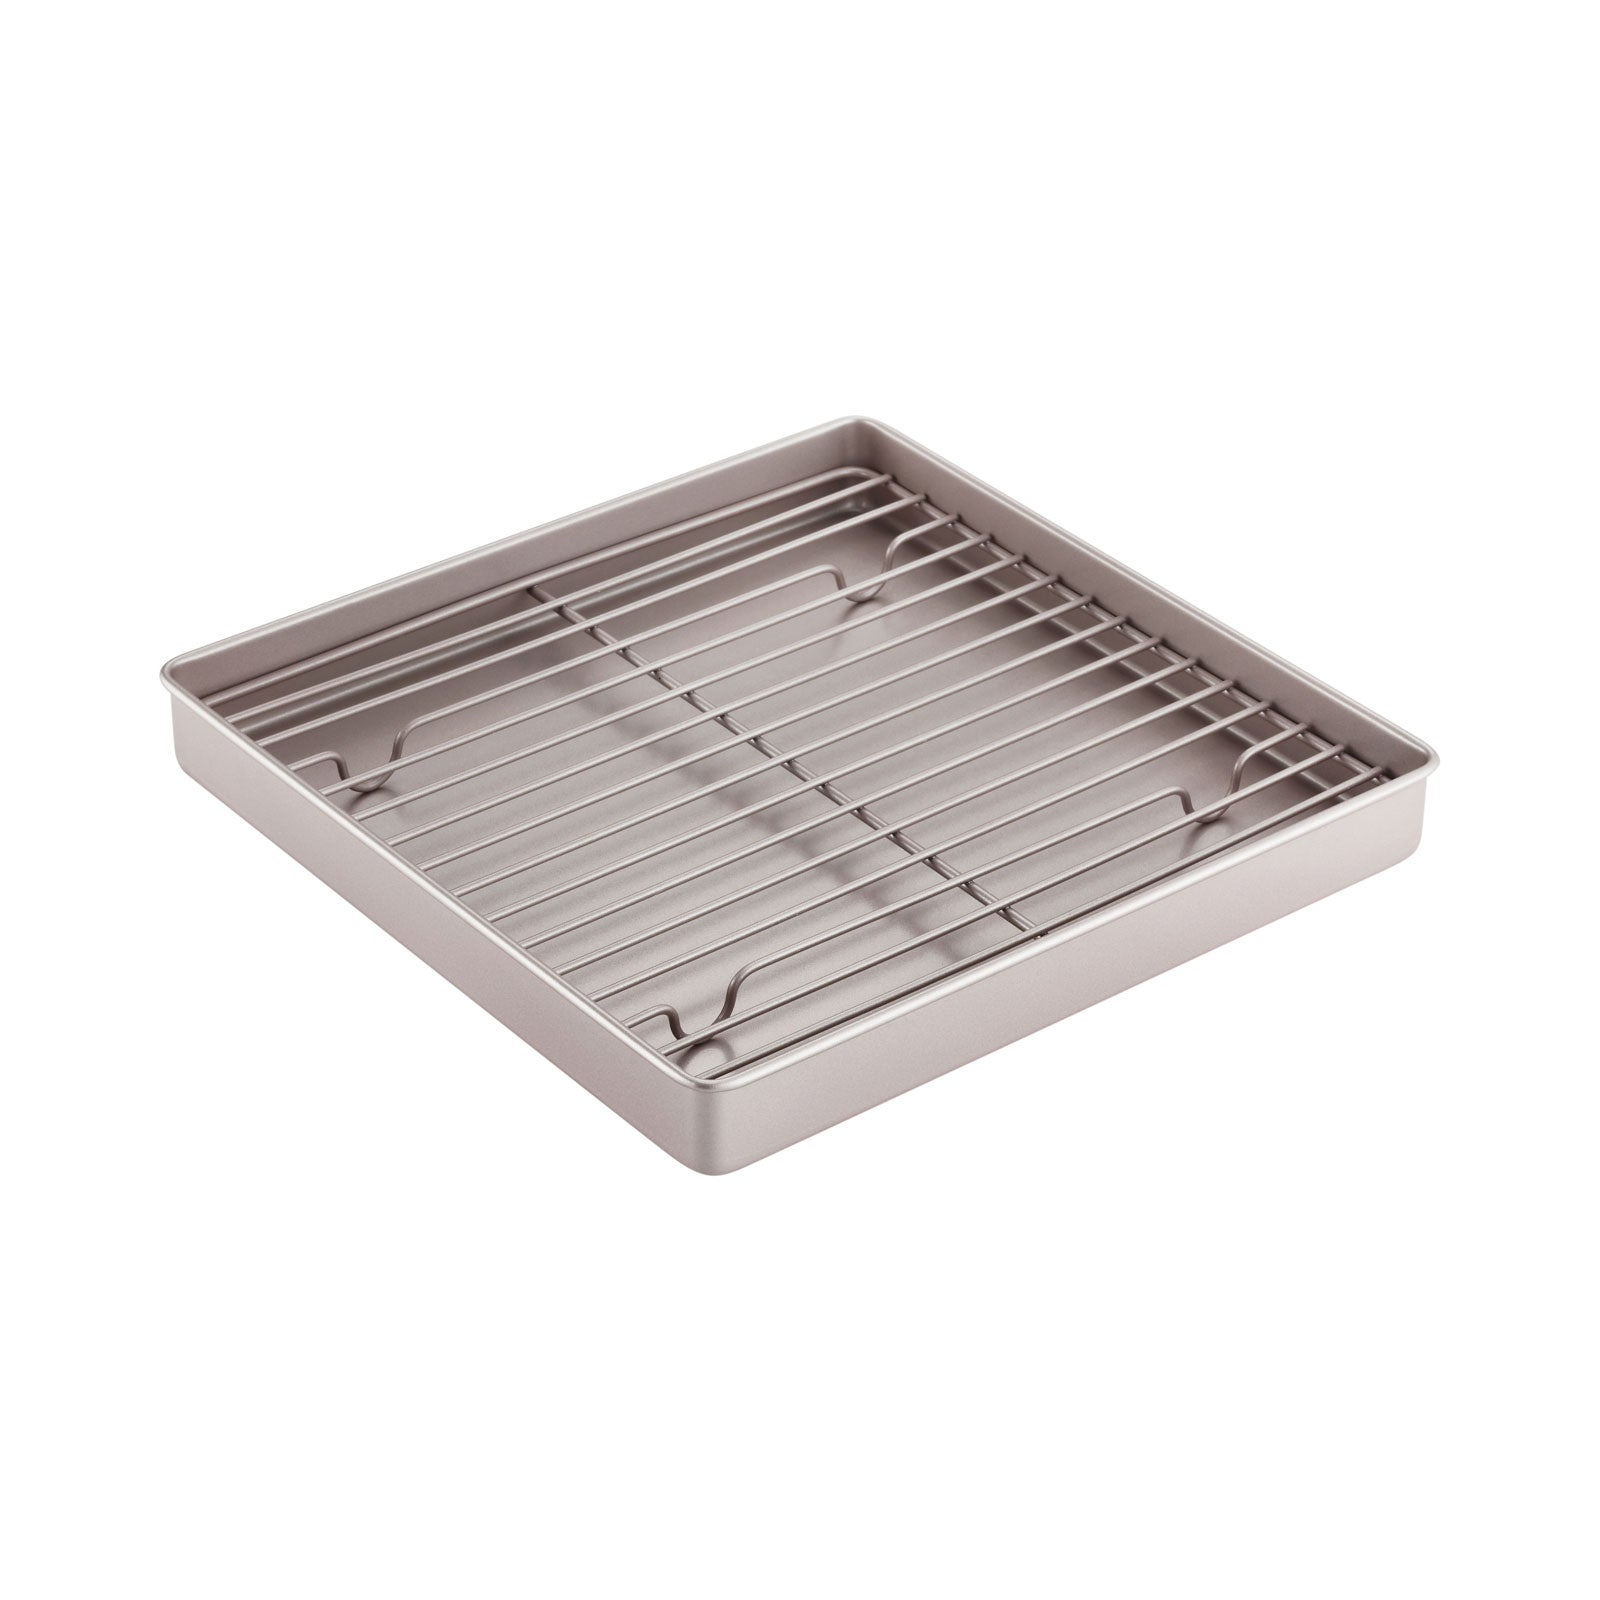 "11.2"" x 11.2"" Square Shallow Roasting Pan with Rack"